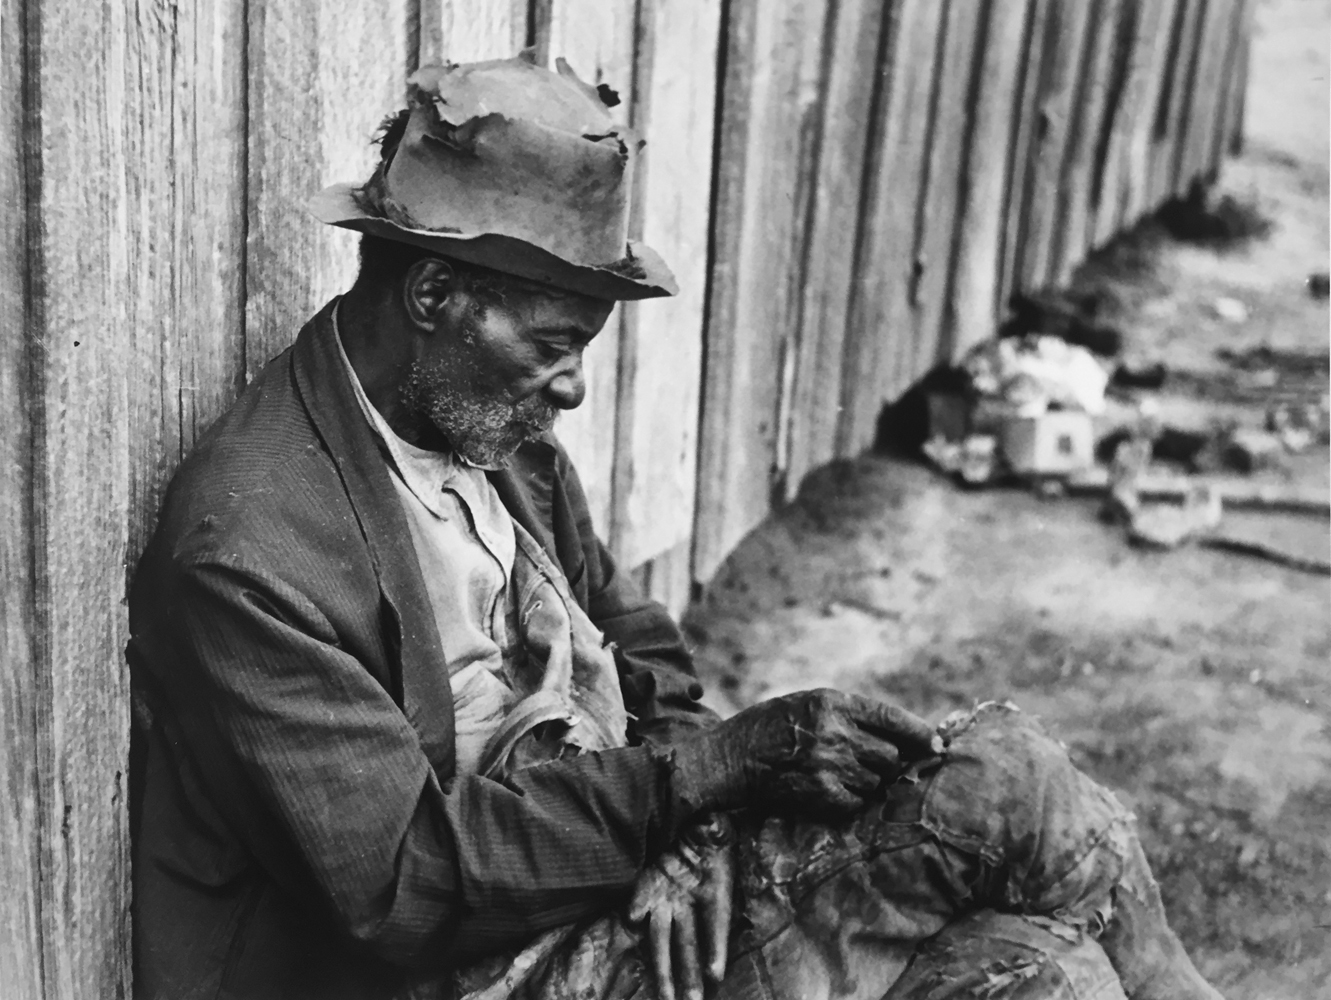 Marion Post Wolcott, The Whittler, an old man (ex-slave) Camden, Alabama, 1939, gelatin silver print, 11 x 14 inches, $4000.